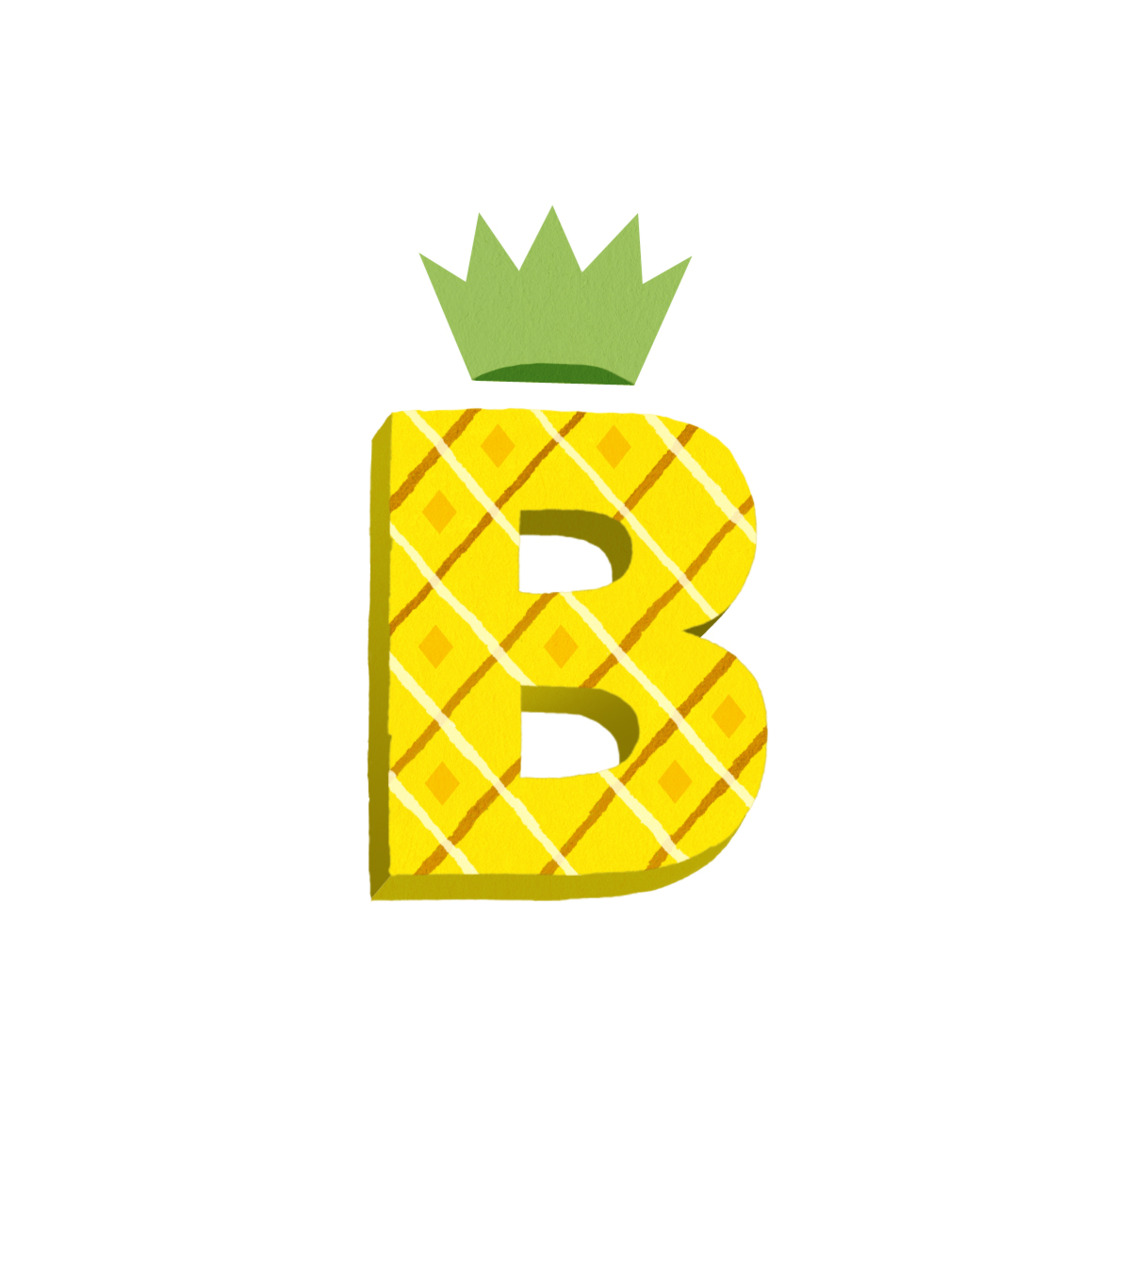 B is for Pineapple! Dropcap for a project that will never see the light of day.